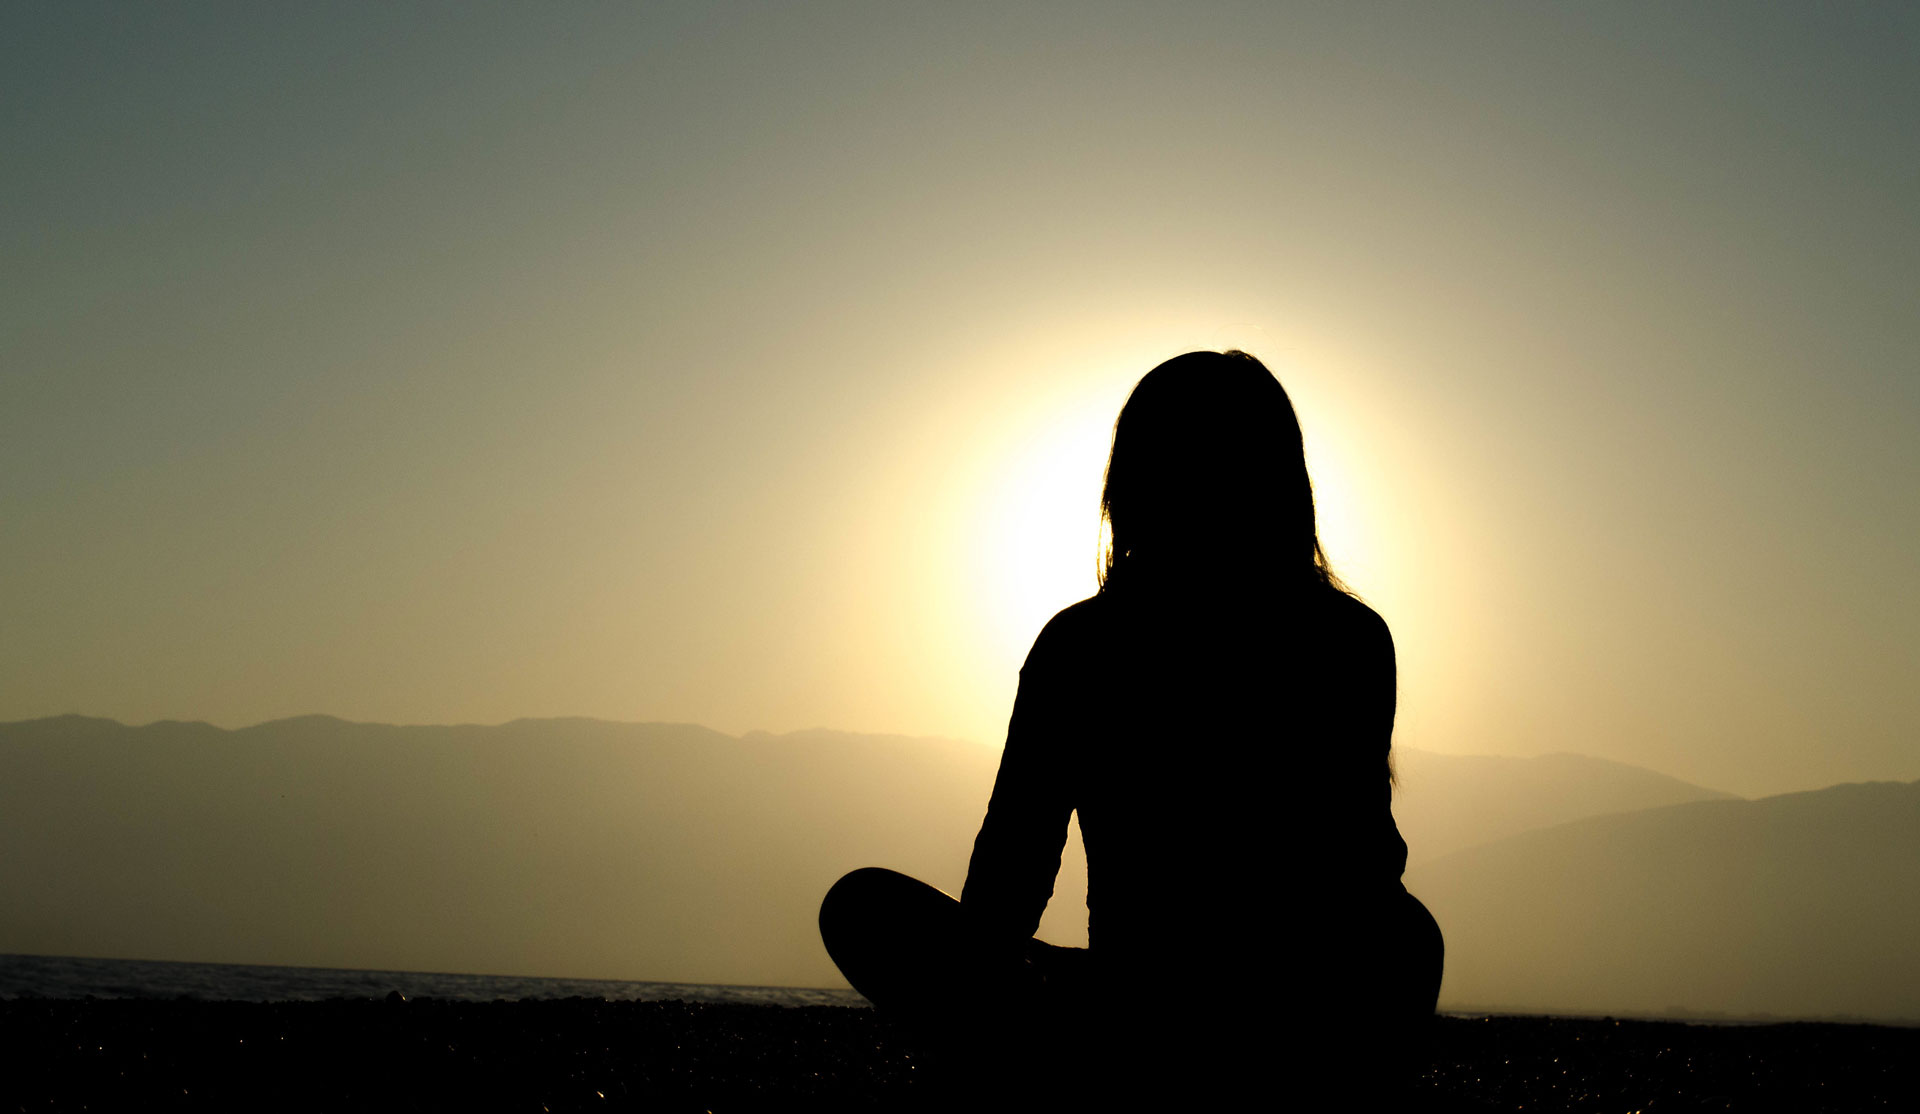 Silhouette of woman sitting on the ground in front of a sunrise